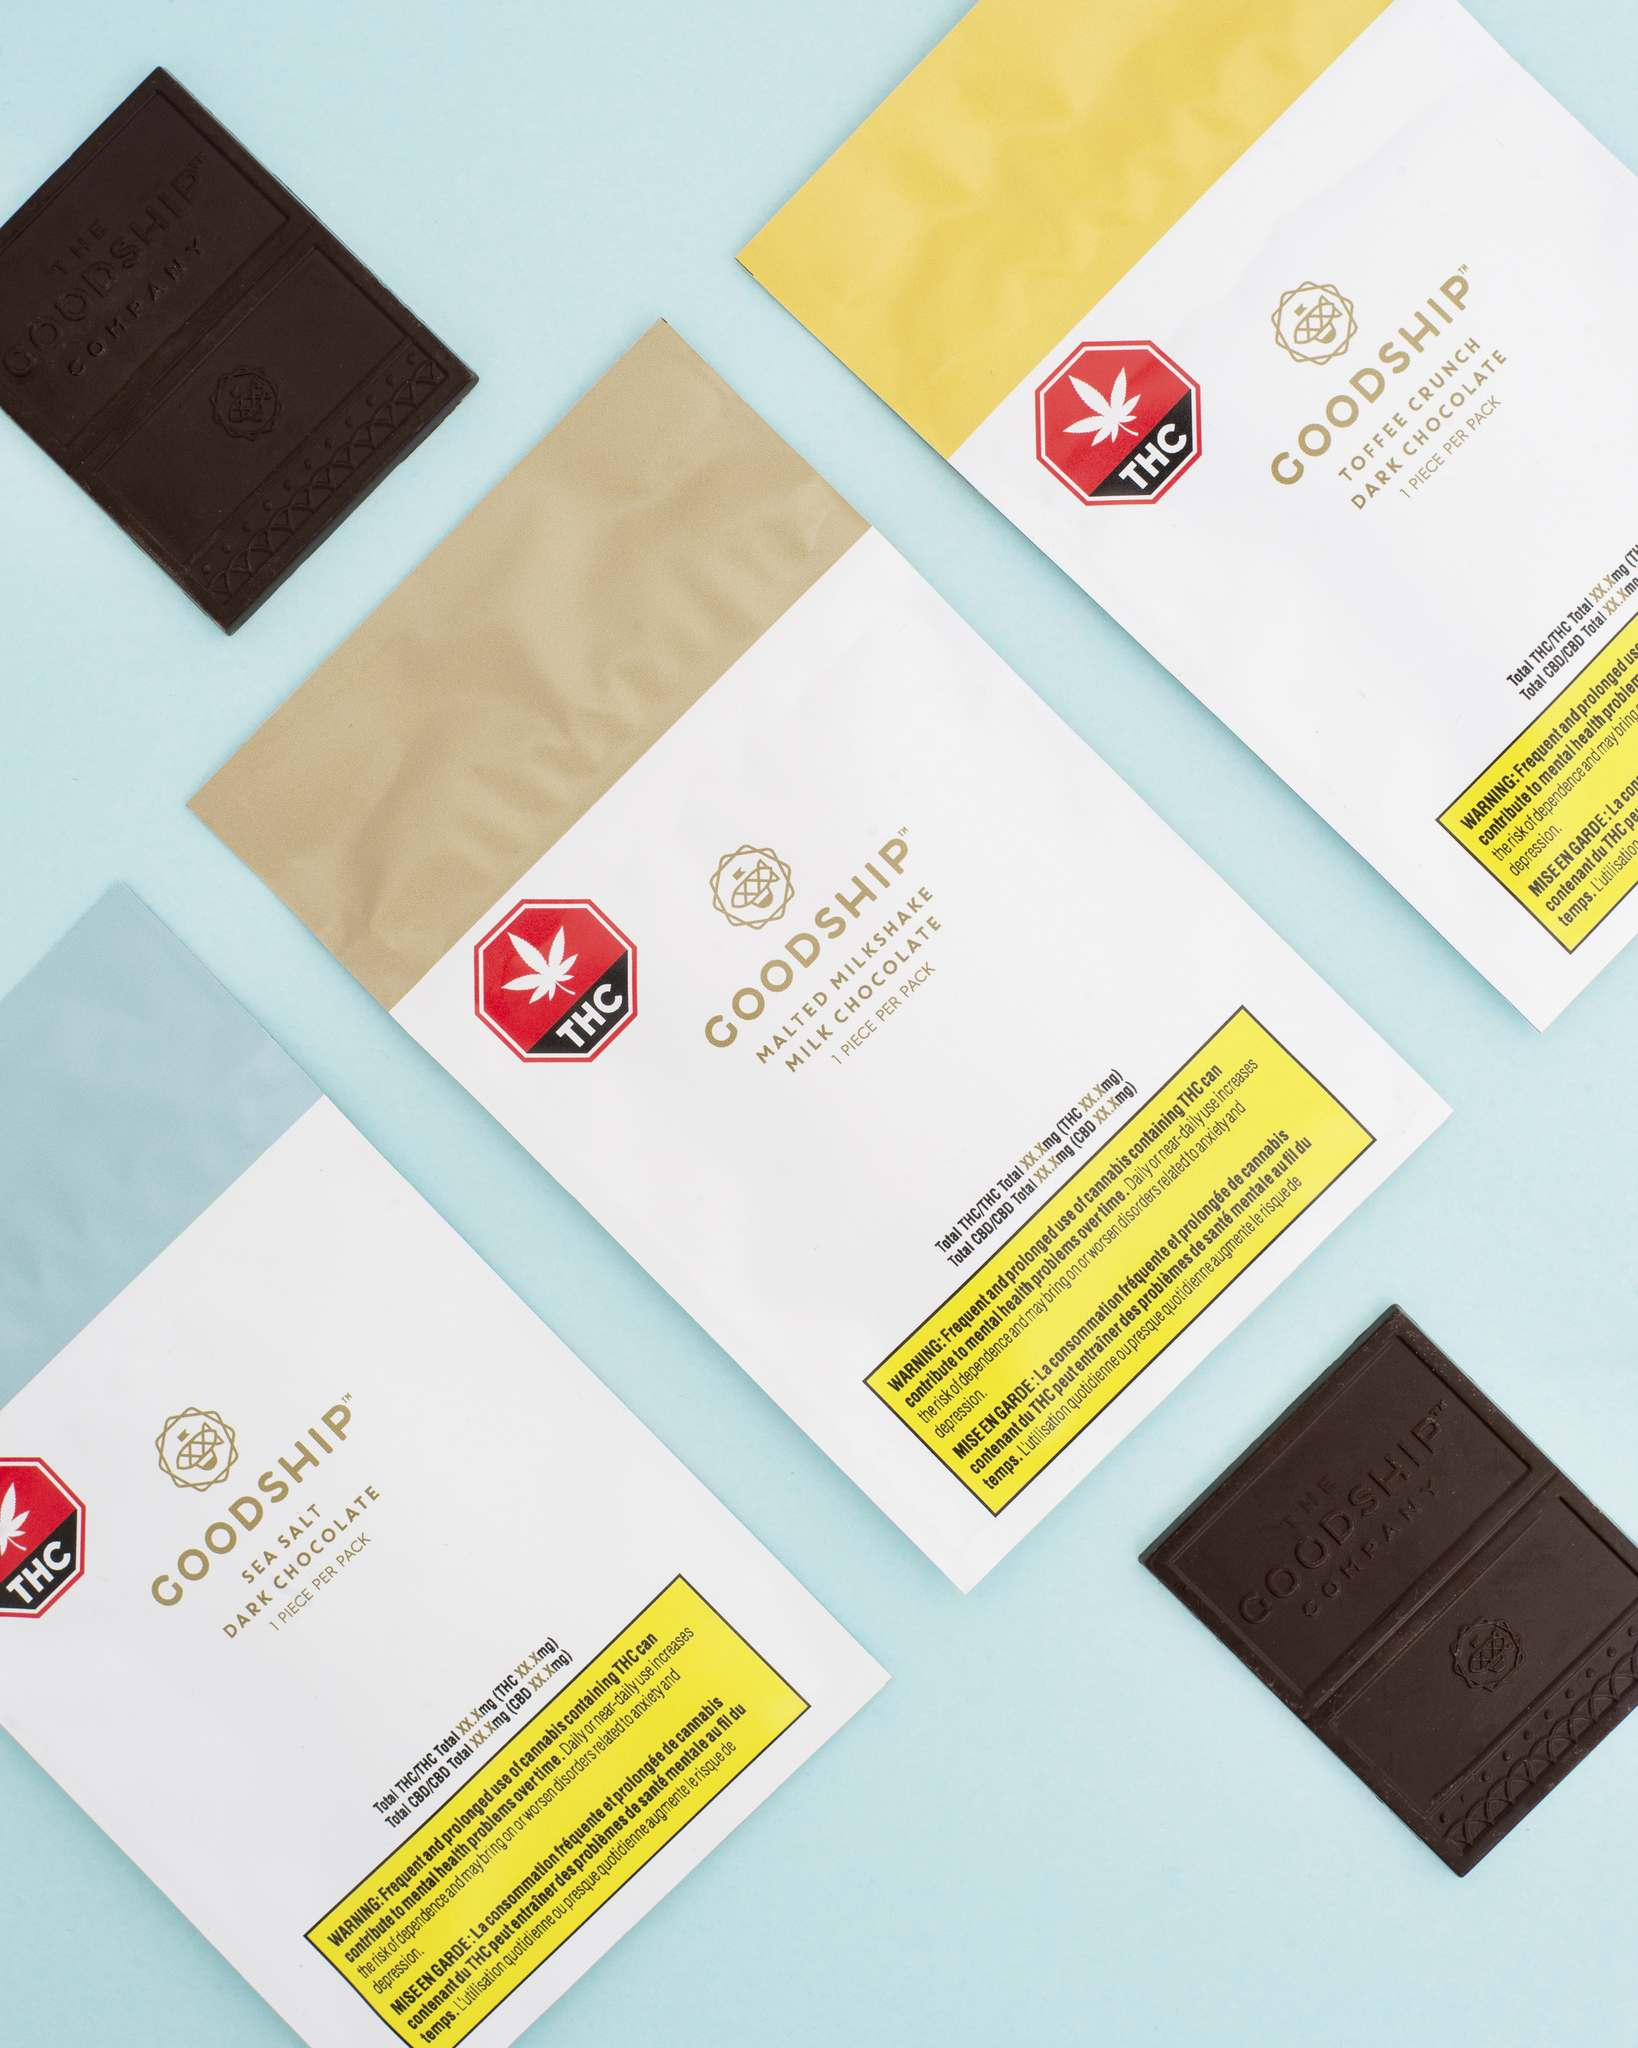 Health Canada recommends new users stick to edible products with 2.5 milligrams of THC or less. (Supplied)